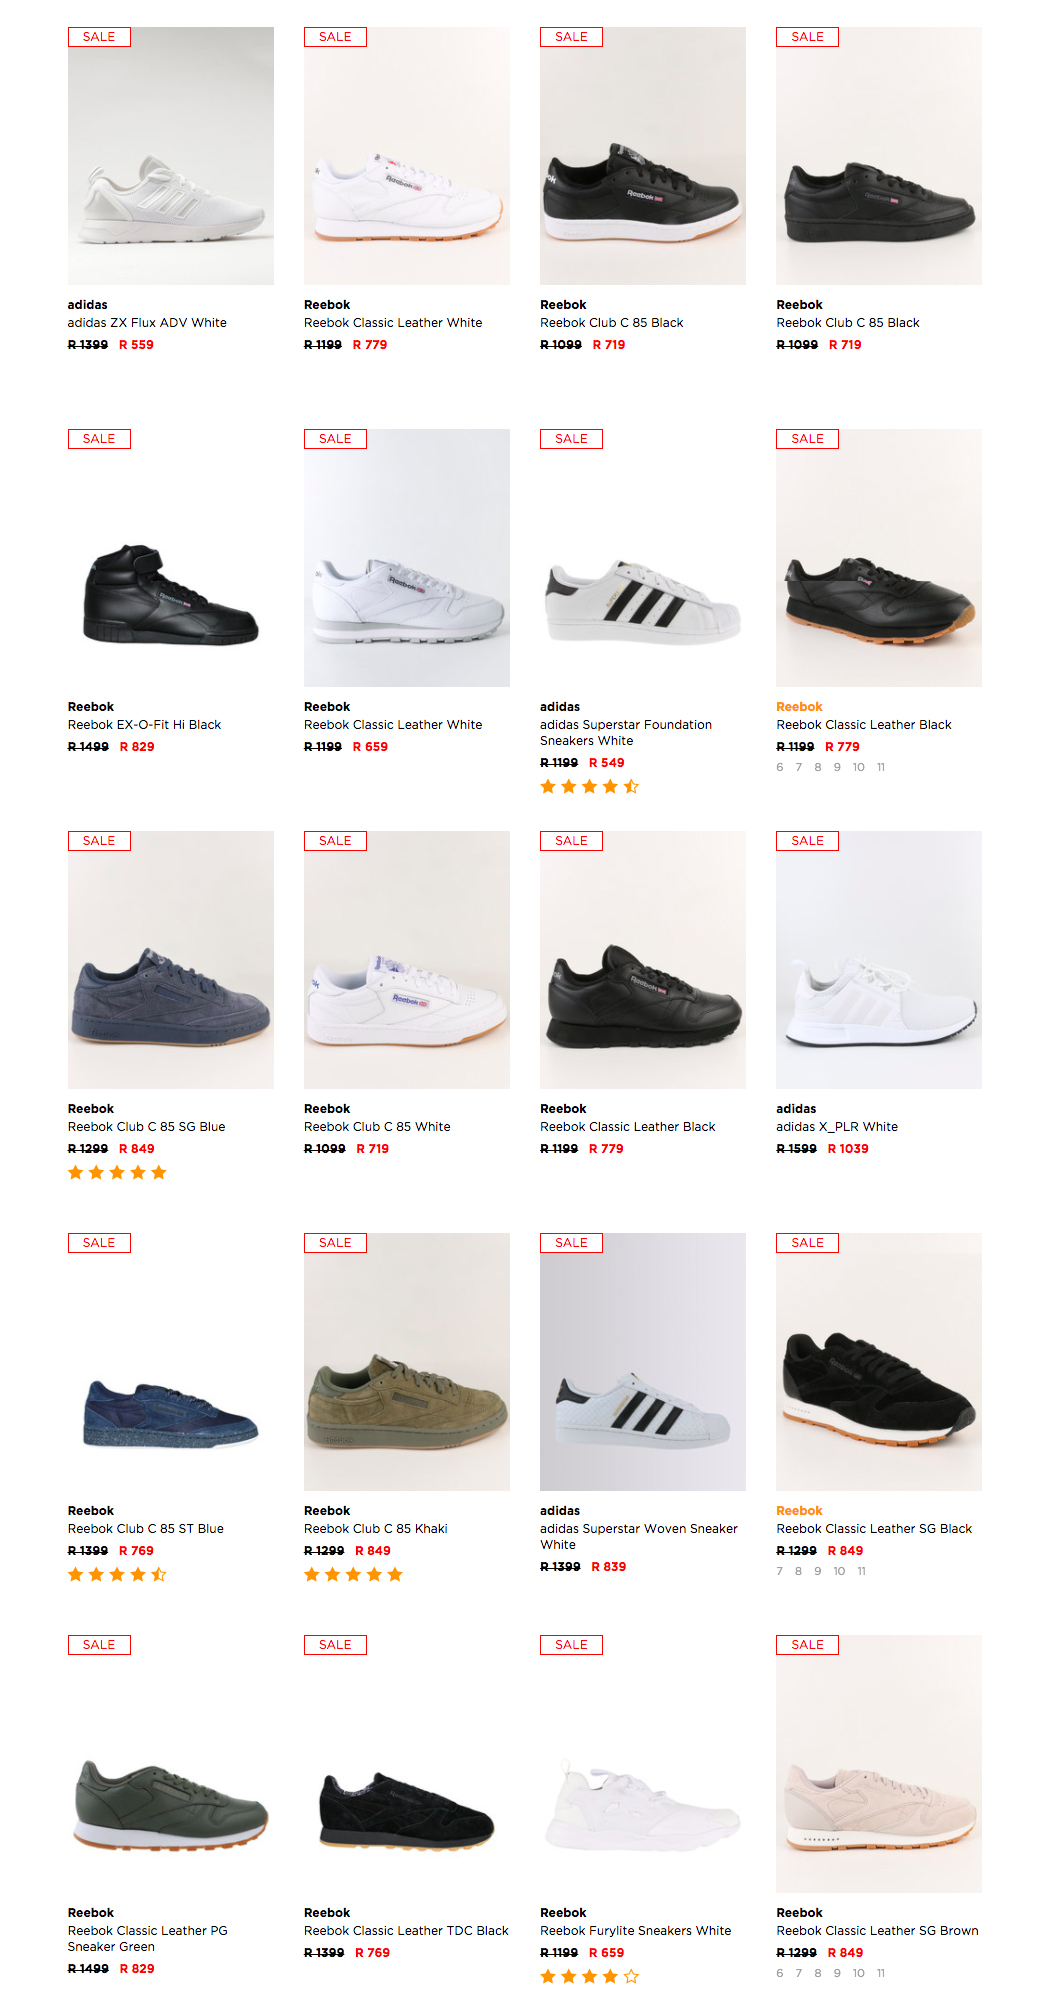 c261d90a72 Sneakers Guide – BLACK FRIDAY 2017